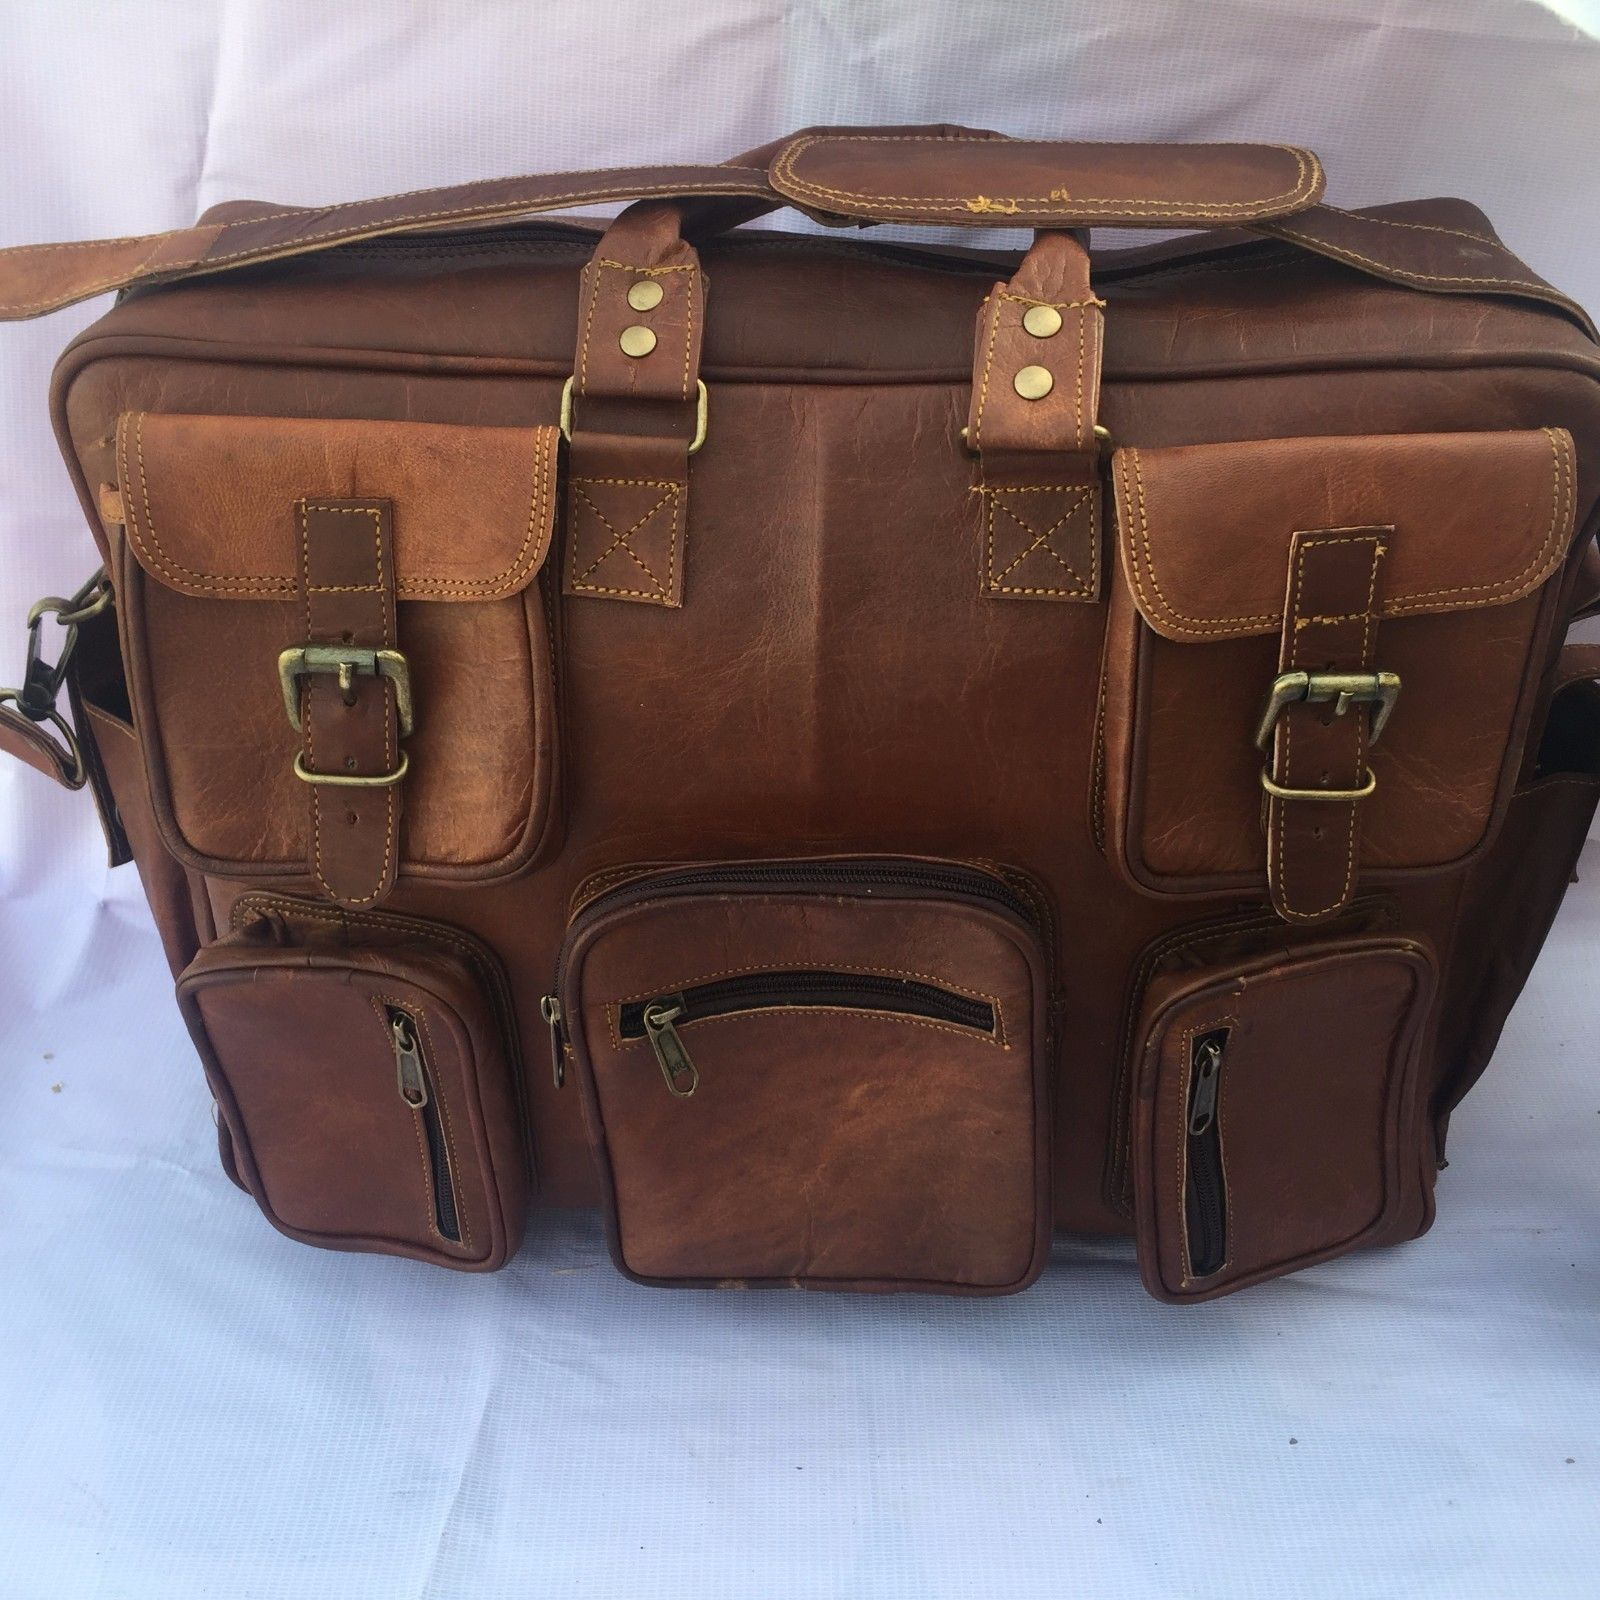 Goat Leather Gym Men Travel Luggage Bag Genuine Brown Vintage Duffle S New Bags